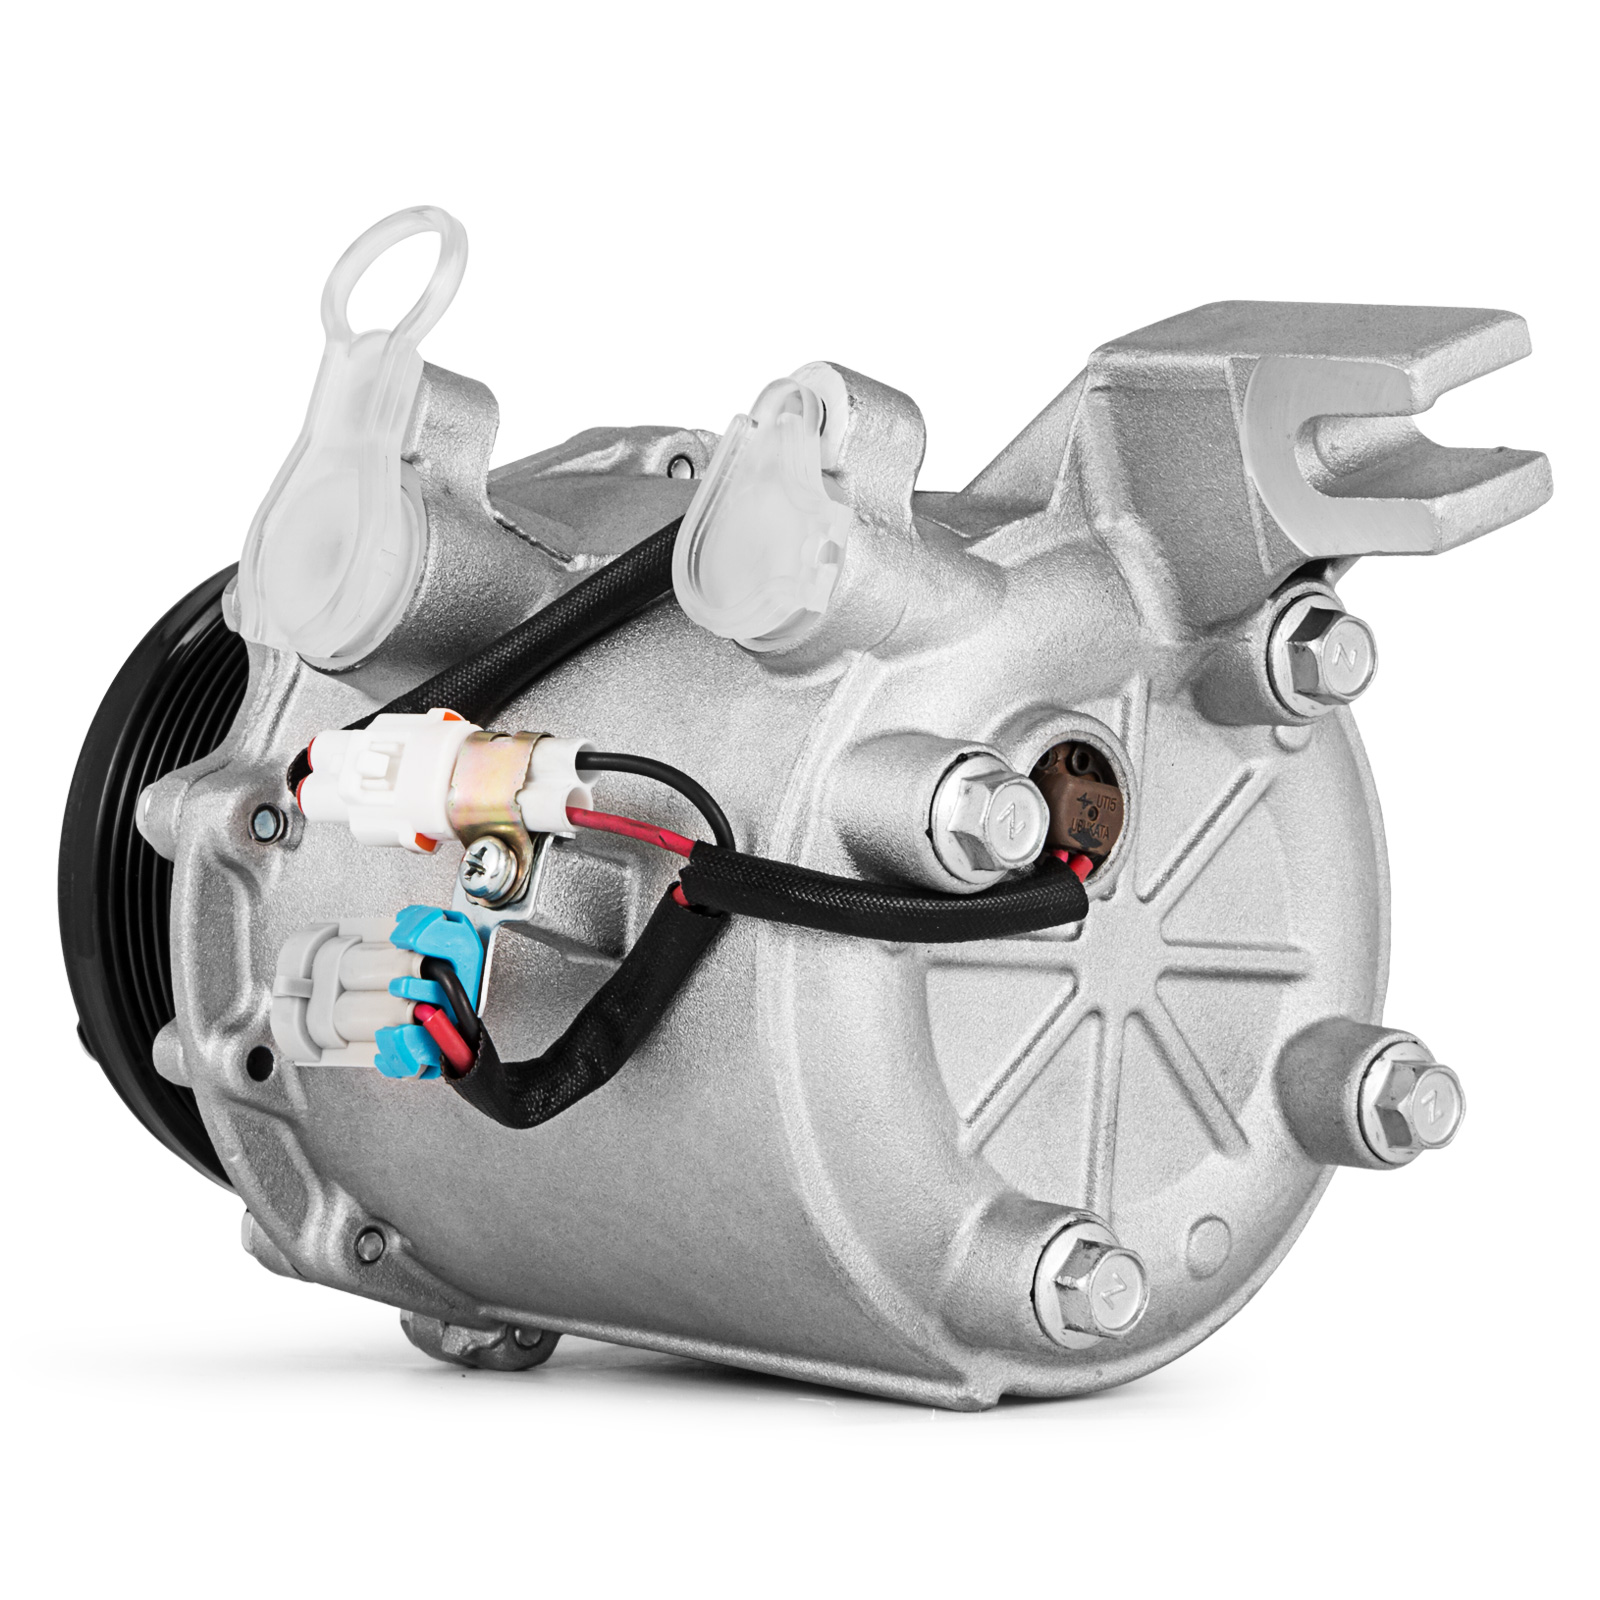 Buick Chevrolet Pontiac Saturn 2006 to 2009 NEW AC Compressor CO 21579T